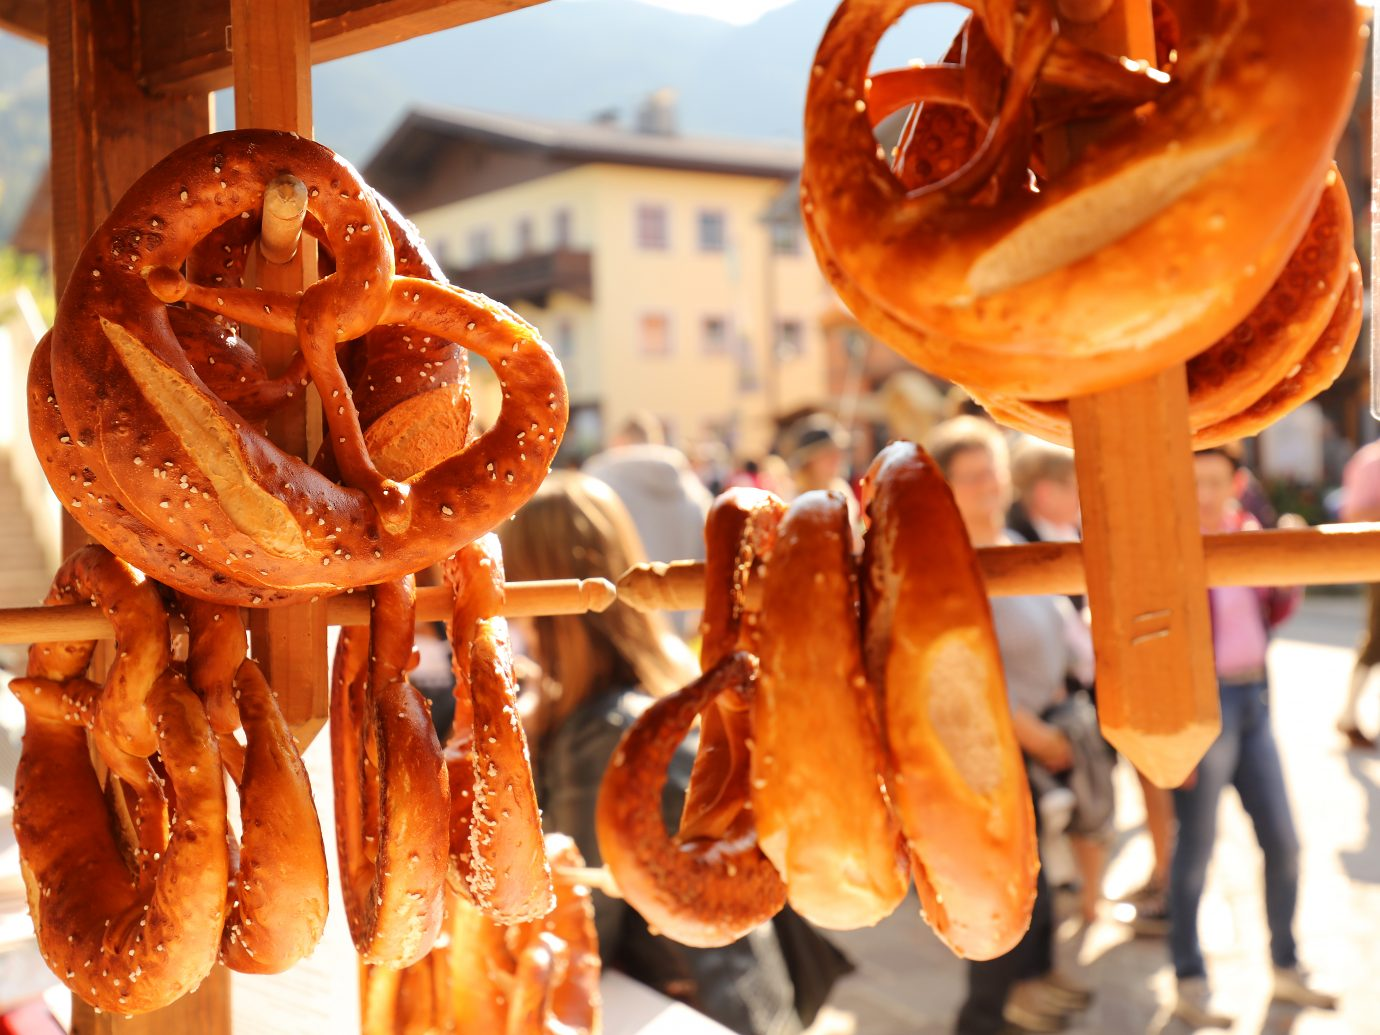 Soft pretzels for sale at a market